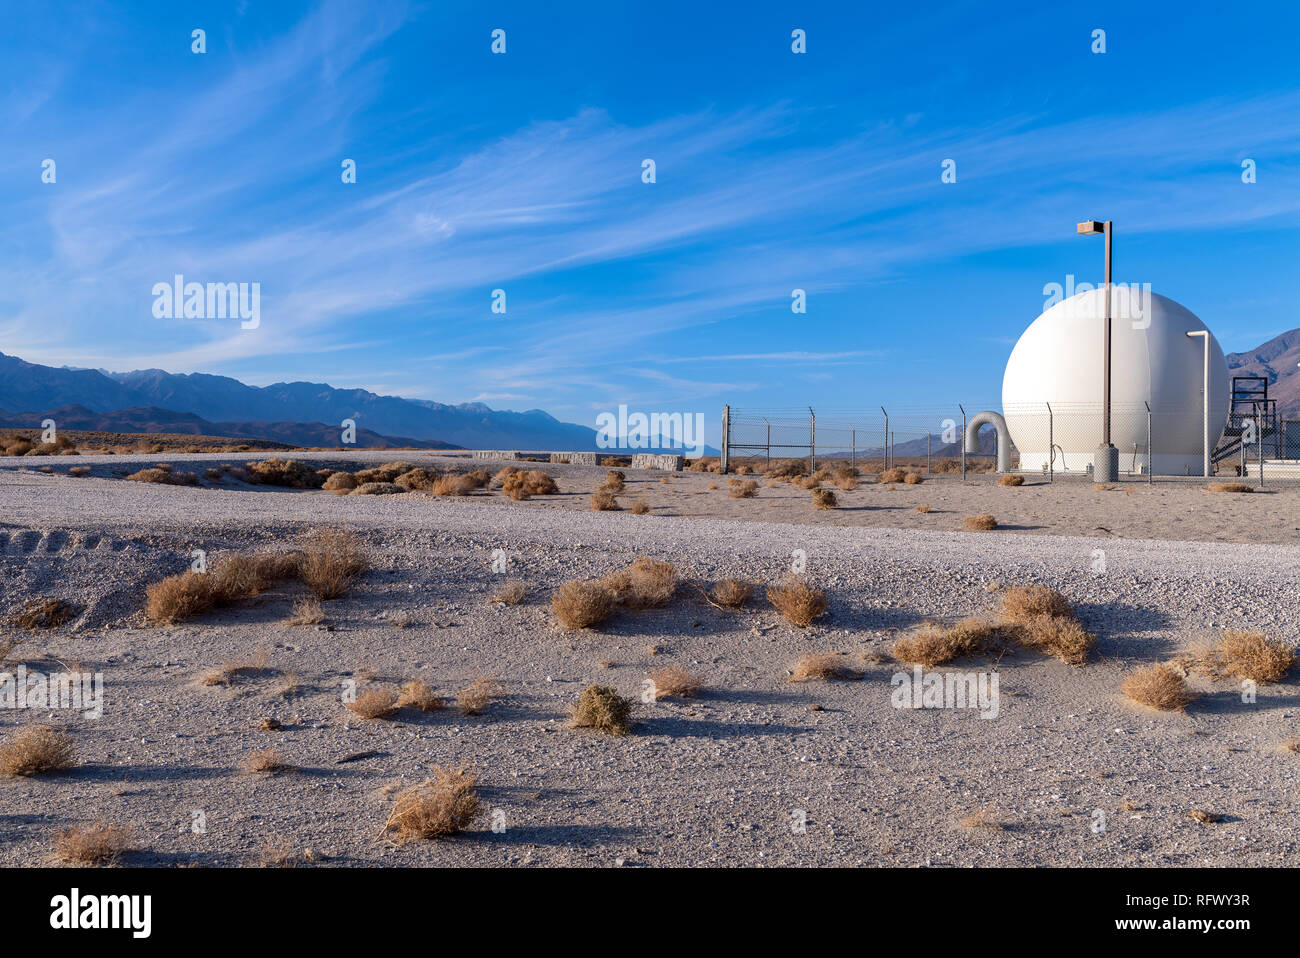 Dome shaped building, part of the Owens Lake Project in California, USA - Stock Image